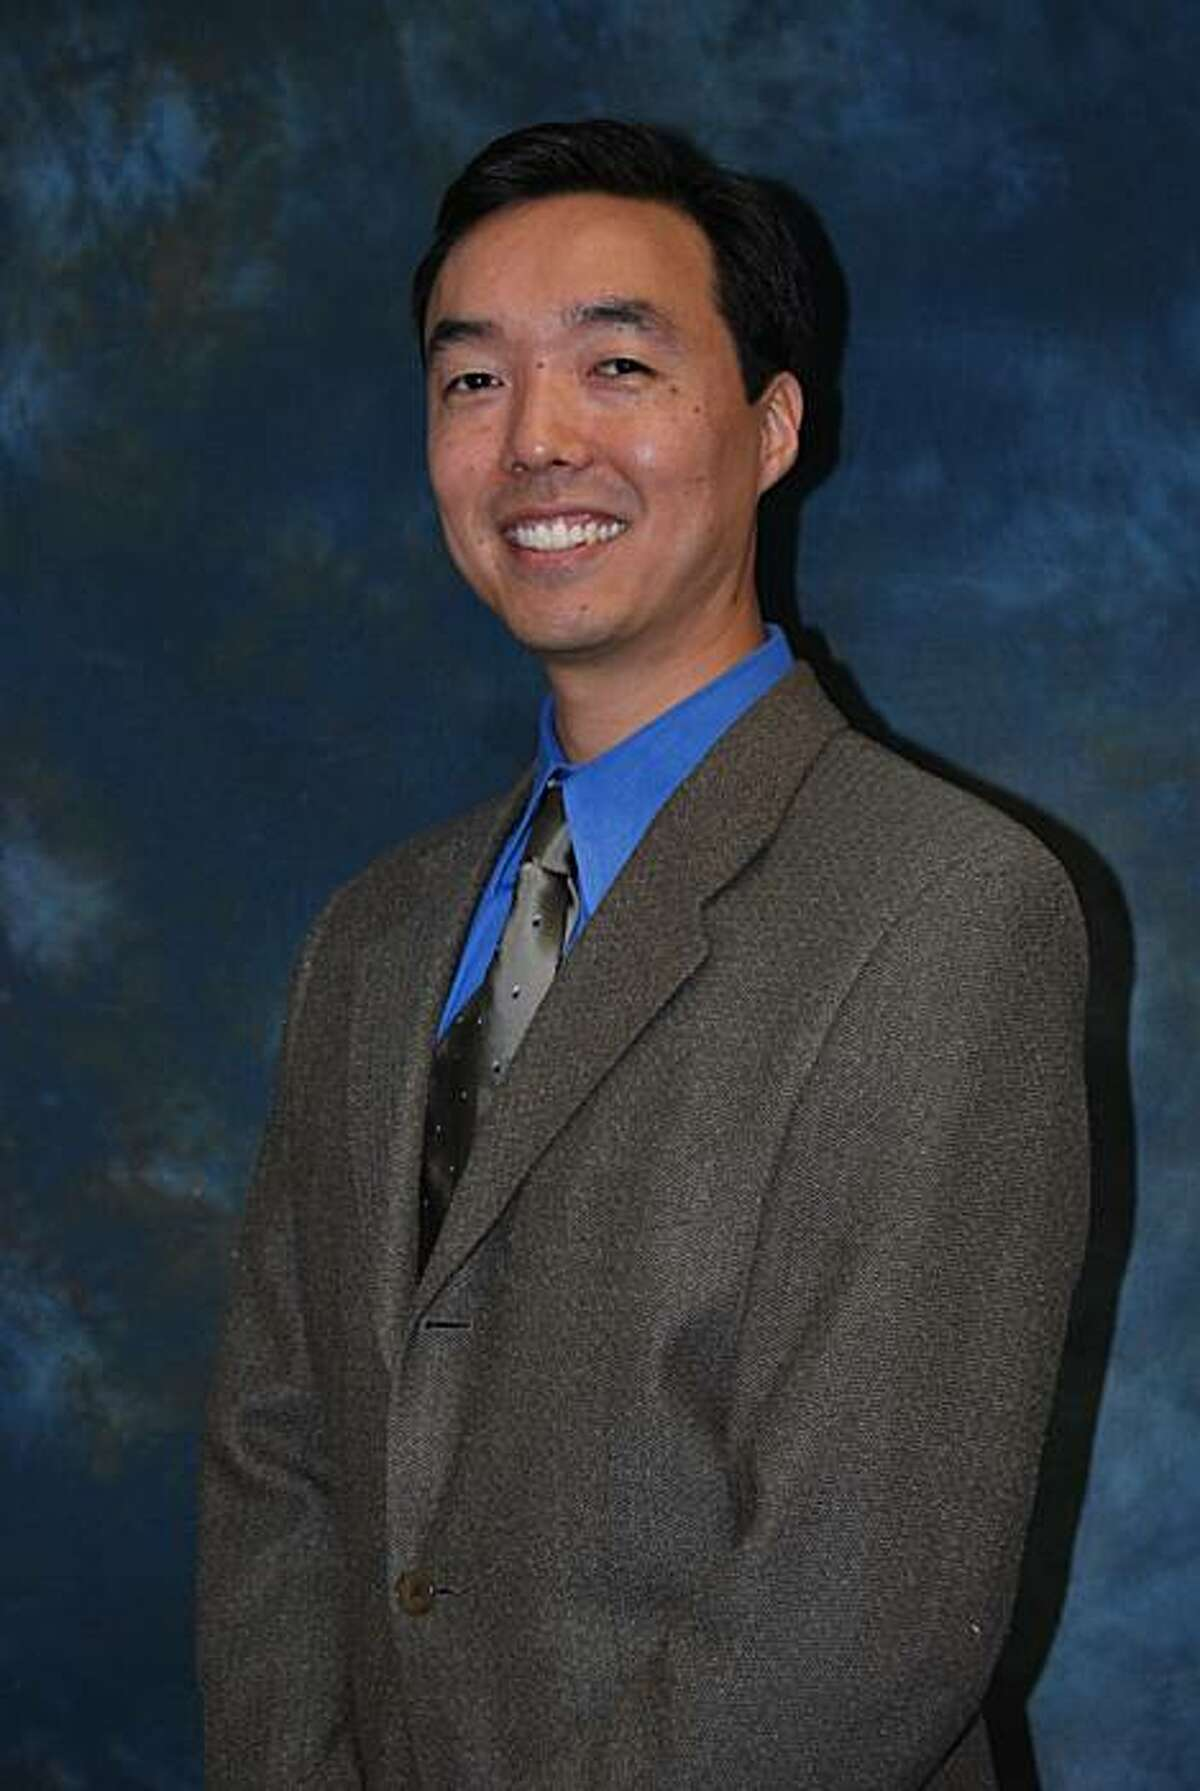 Ian Kim is the director of the Green-Collar Jobs Campaign for the Ella Baker Center for Human Rights